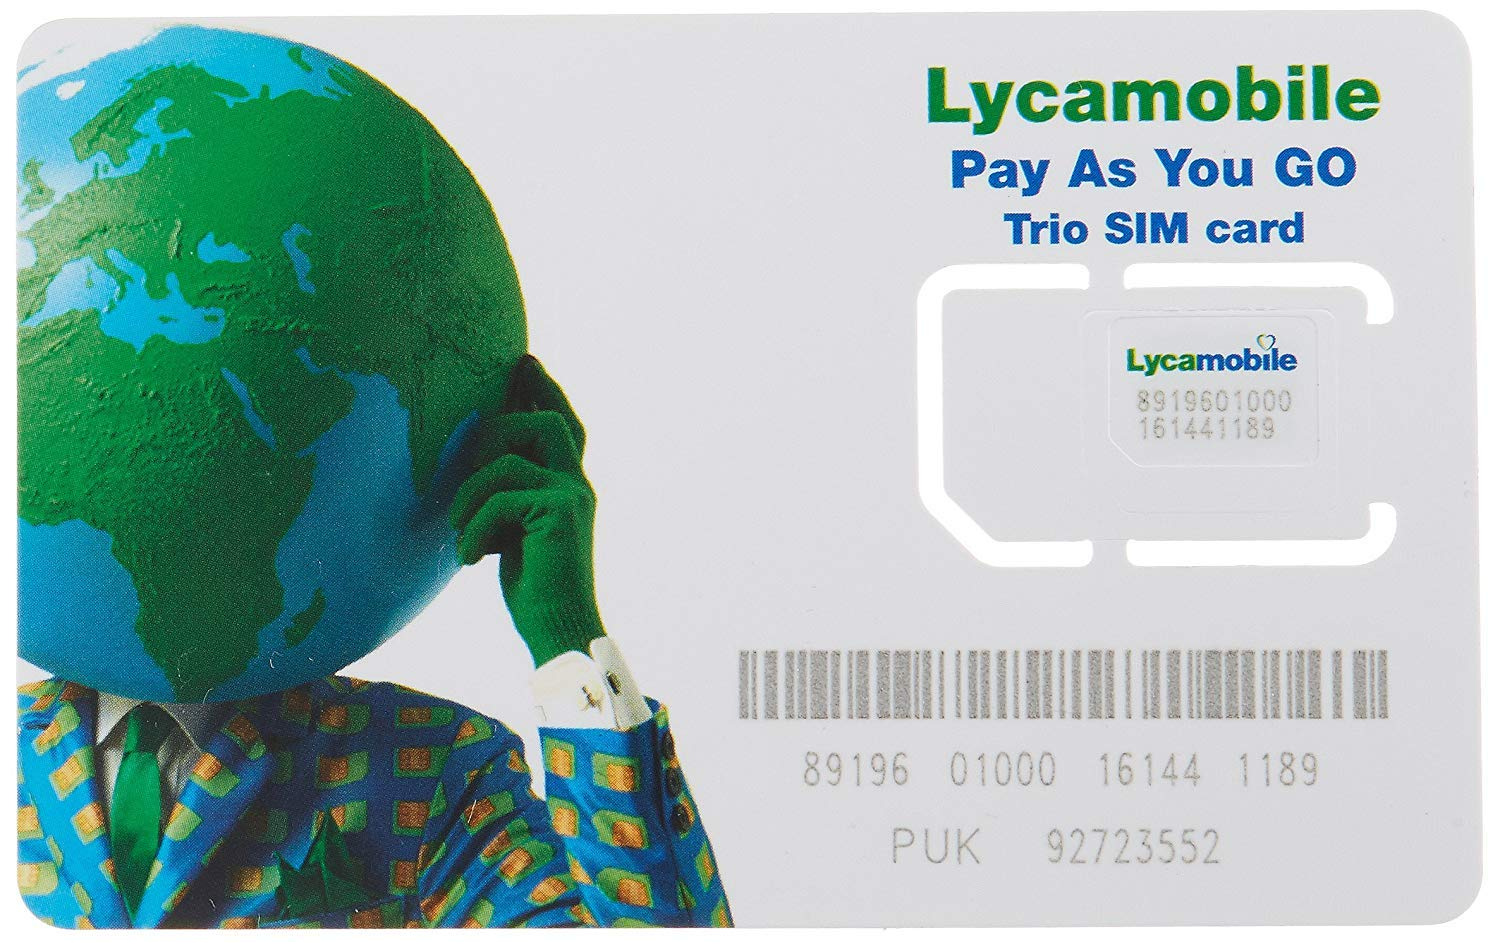 Lycamobile $23 plan preloaded sim card with 2 month service by Lyca Mobile